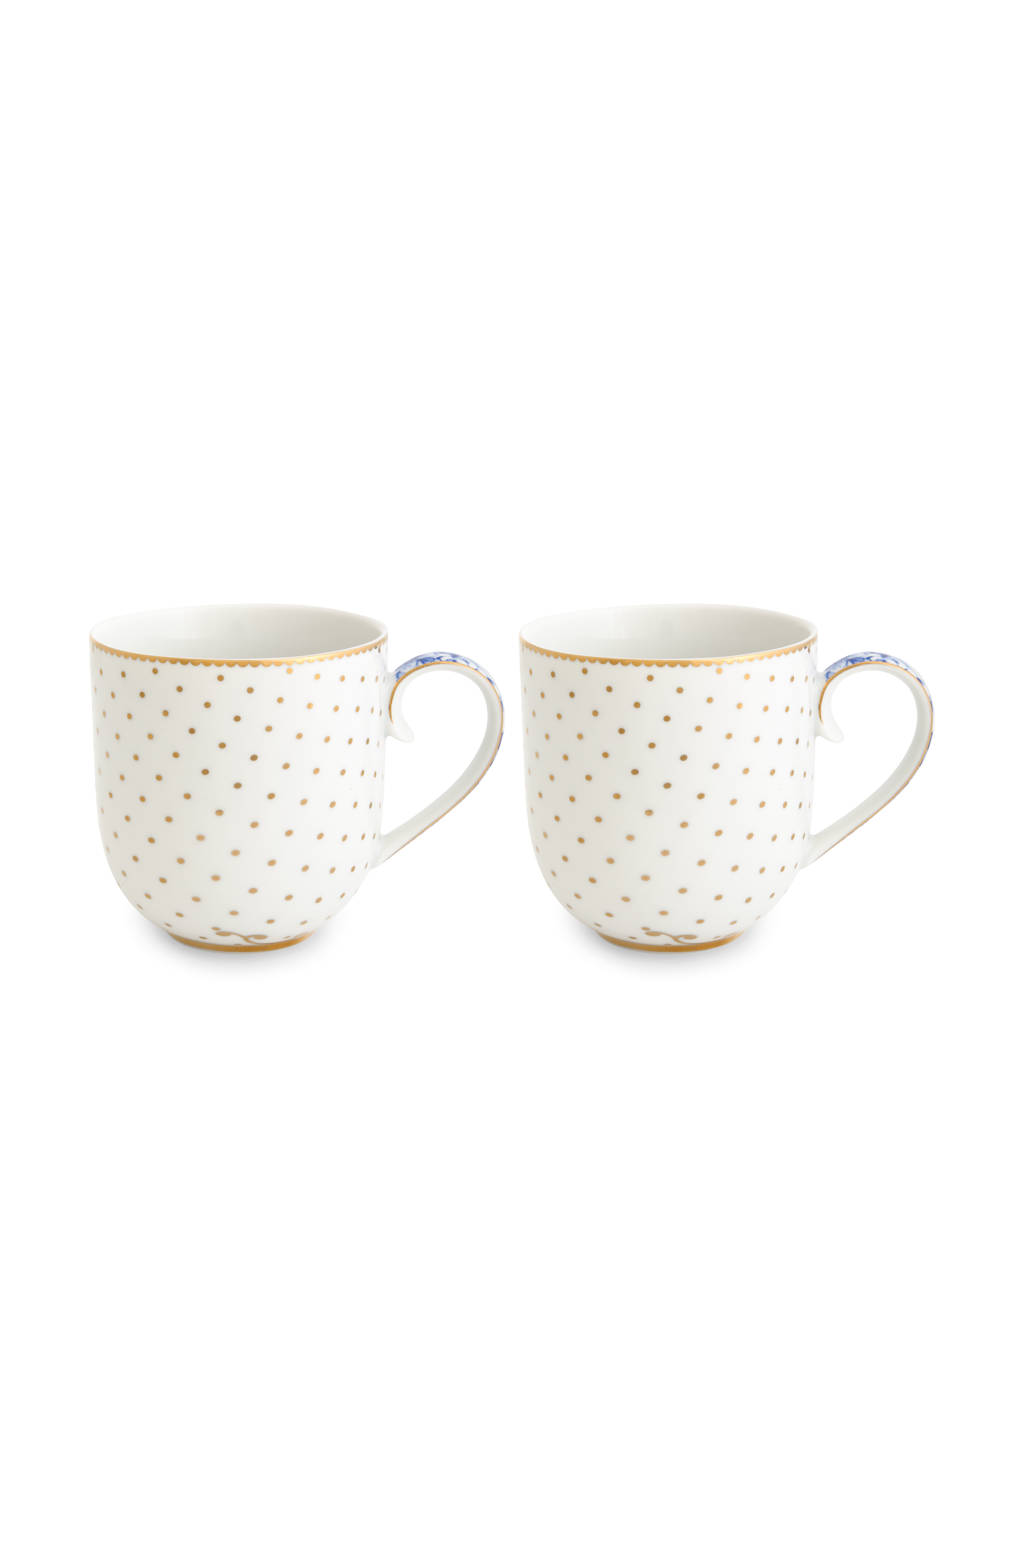 Pip Studio Set/2 Mugs Small Royal White 260ml